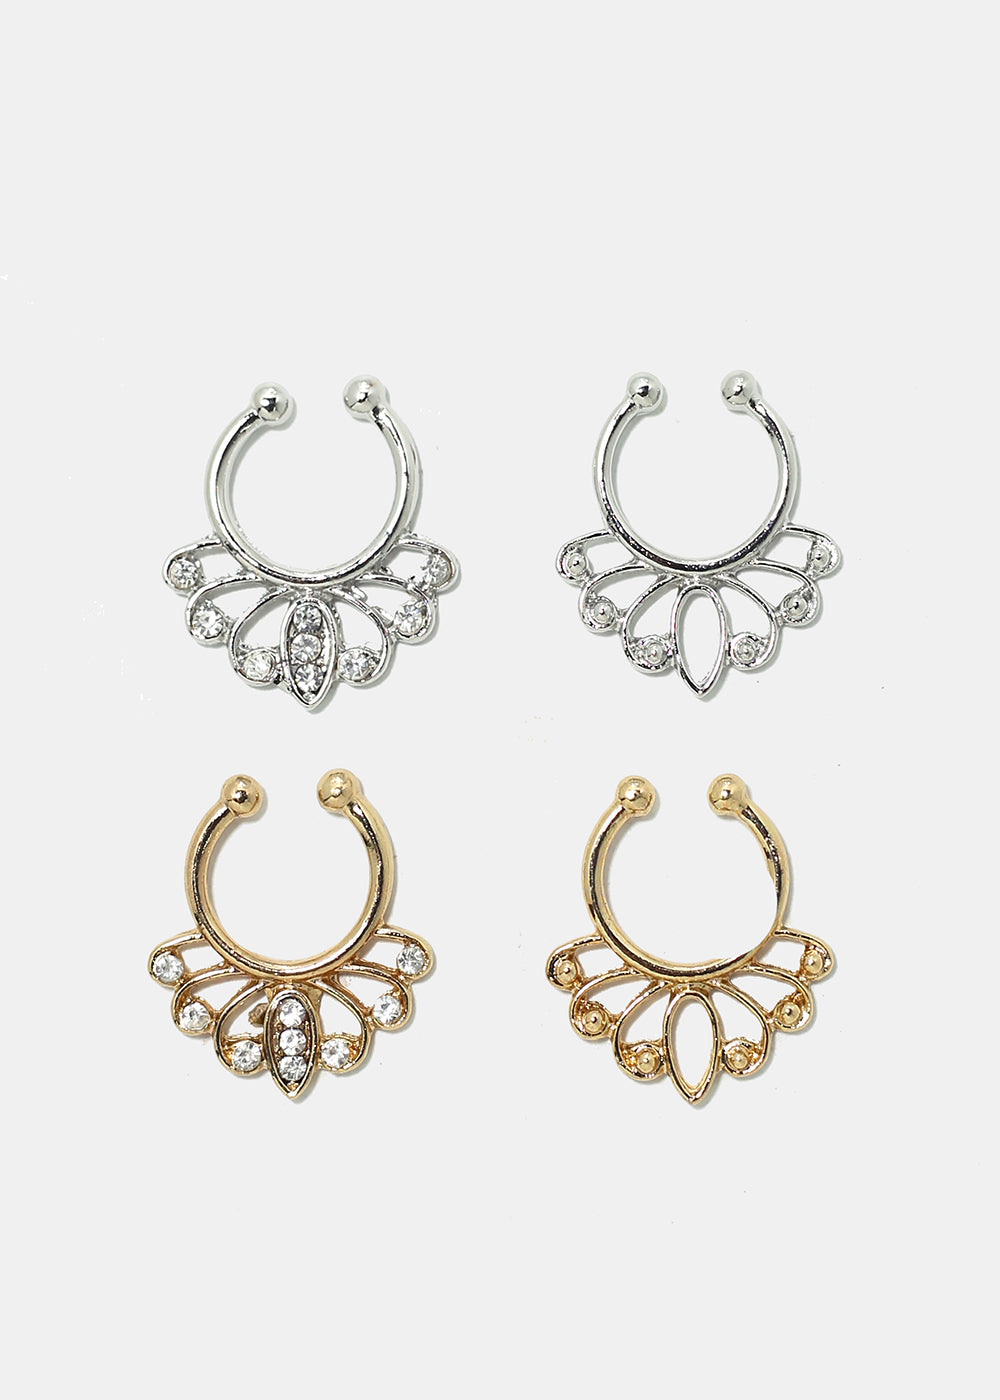 2-Piece Filigree Faux Septum Rings